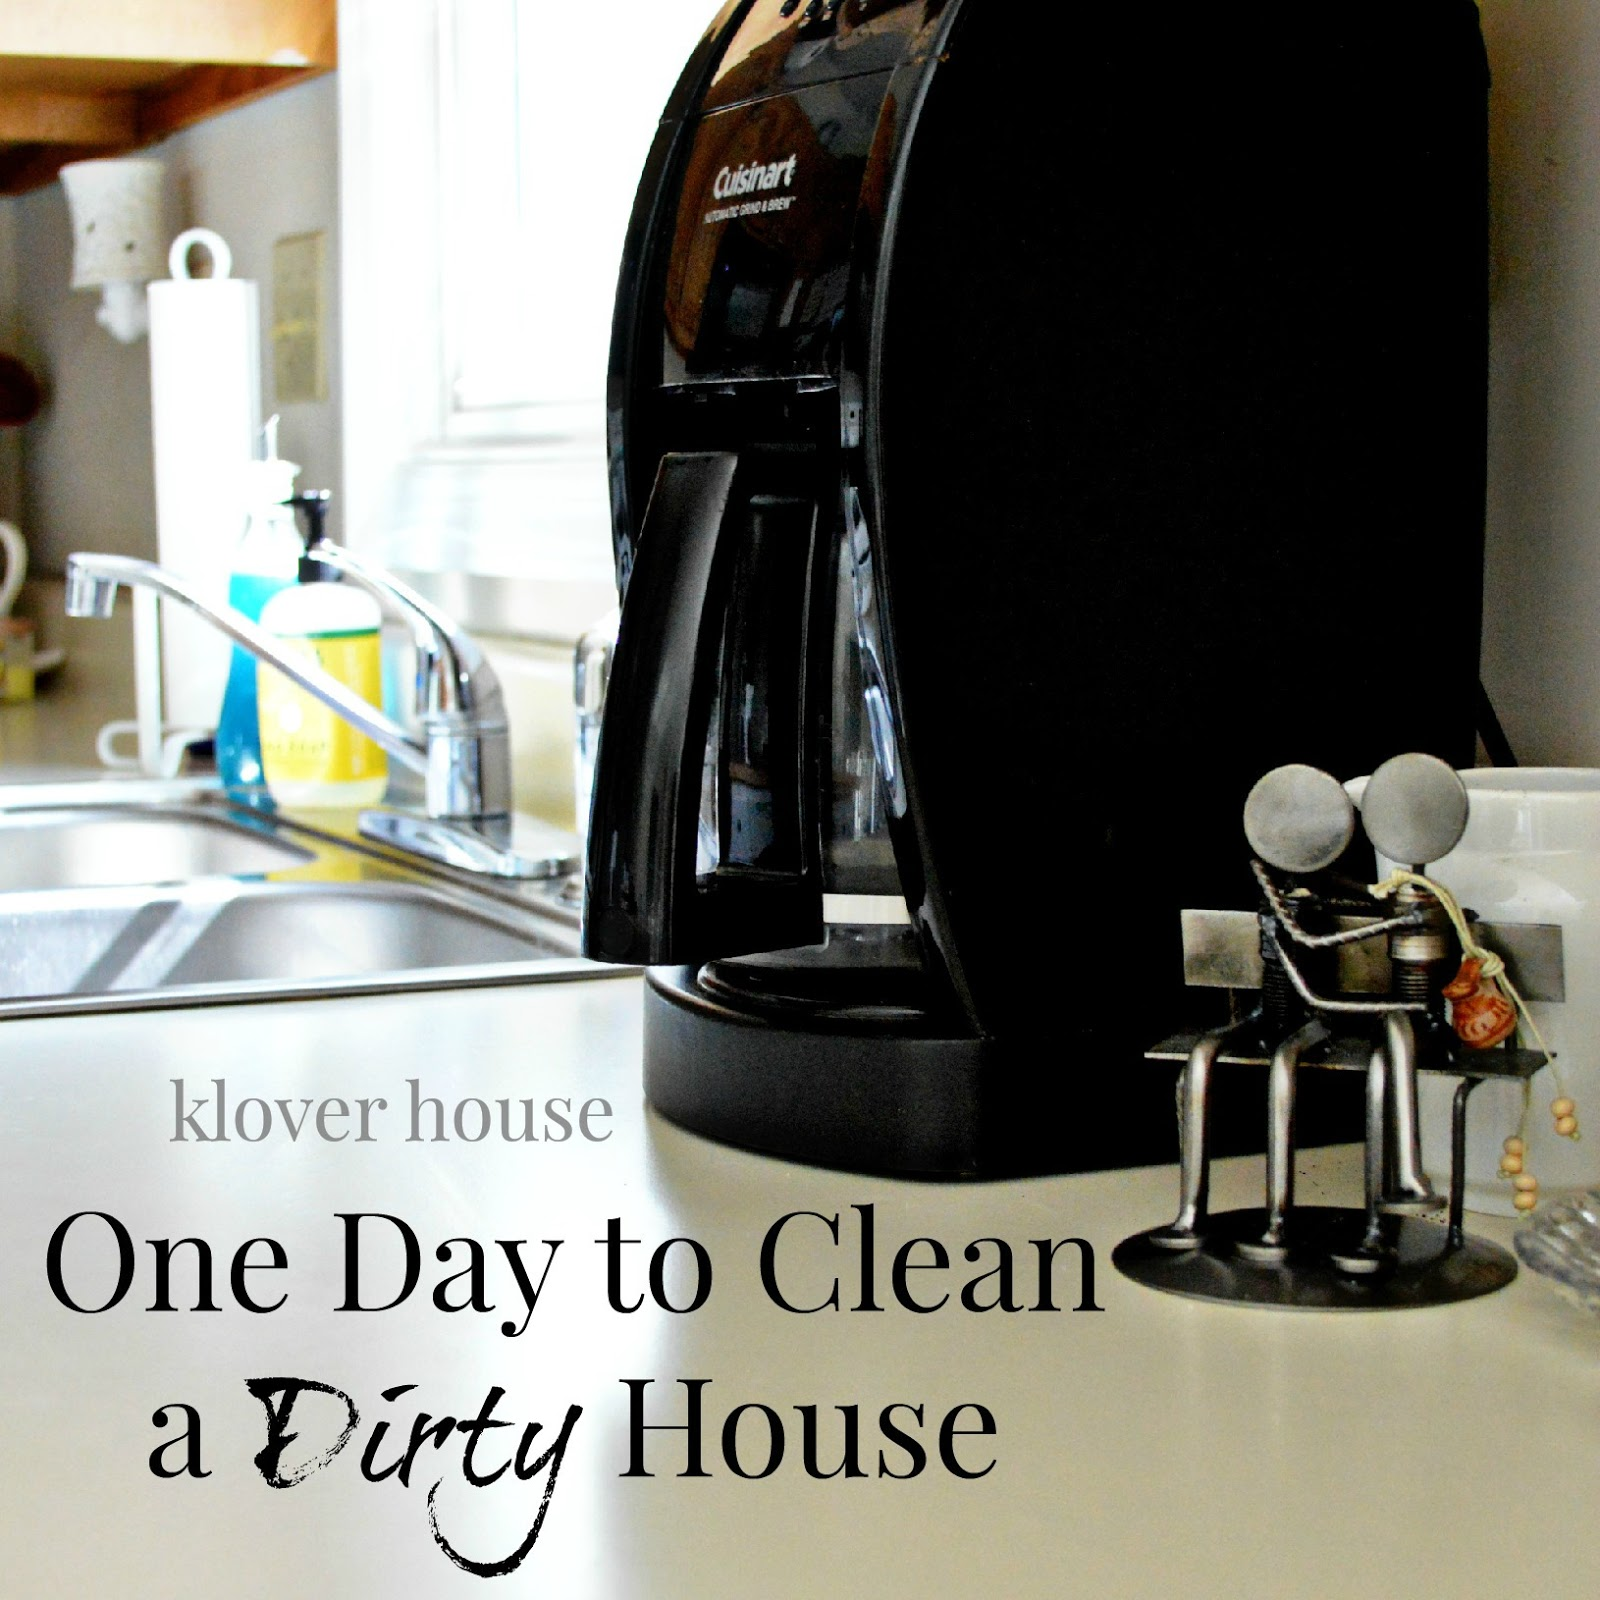 One Day to Clean a Dirty House - Klover House